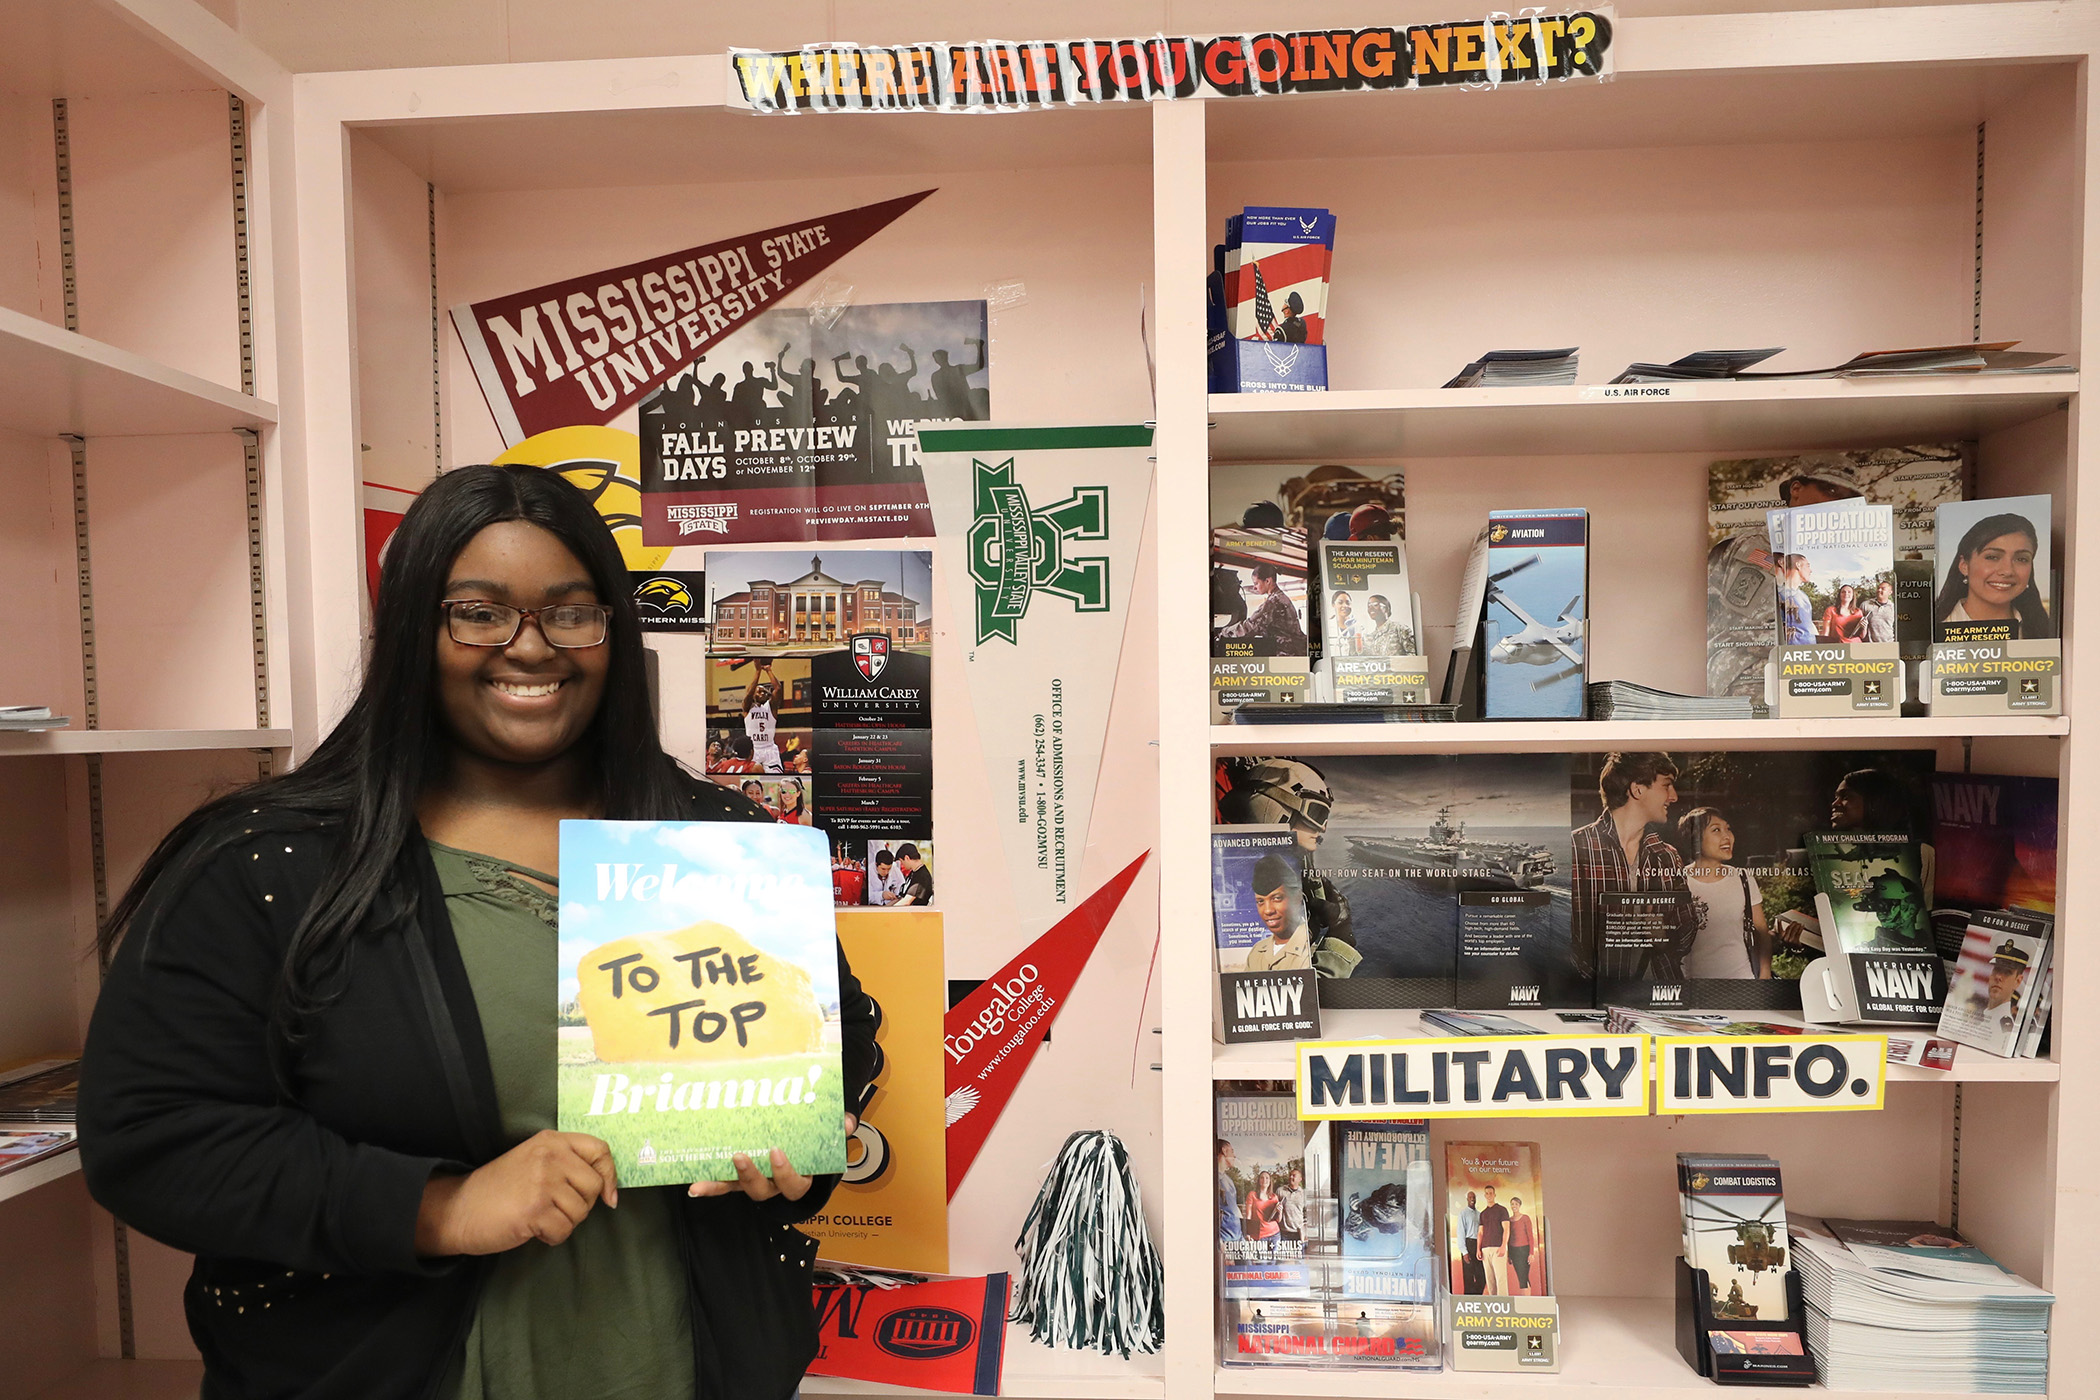 Brianna poses with a University of Southern Mississippi brochure.